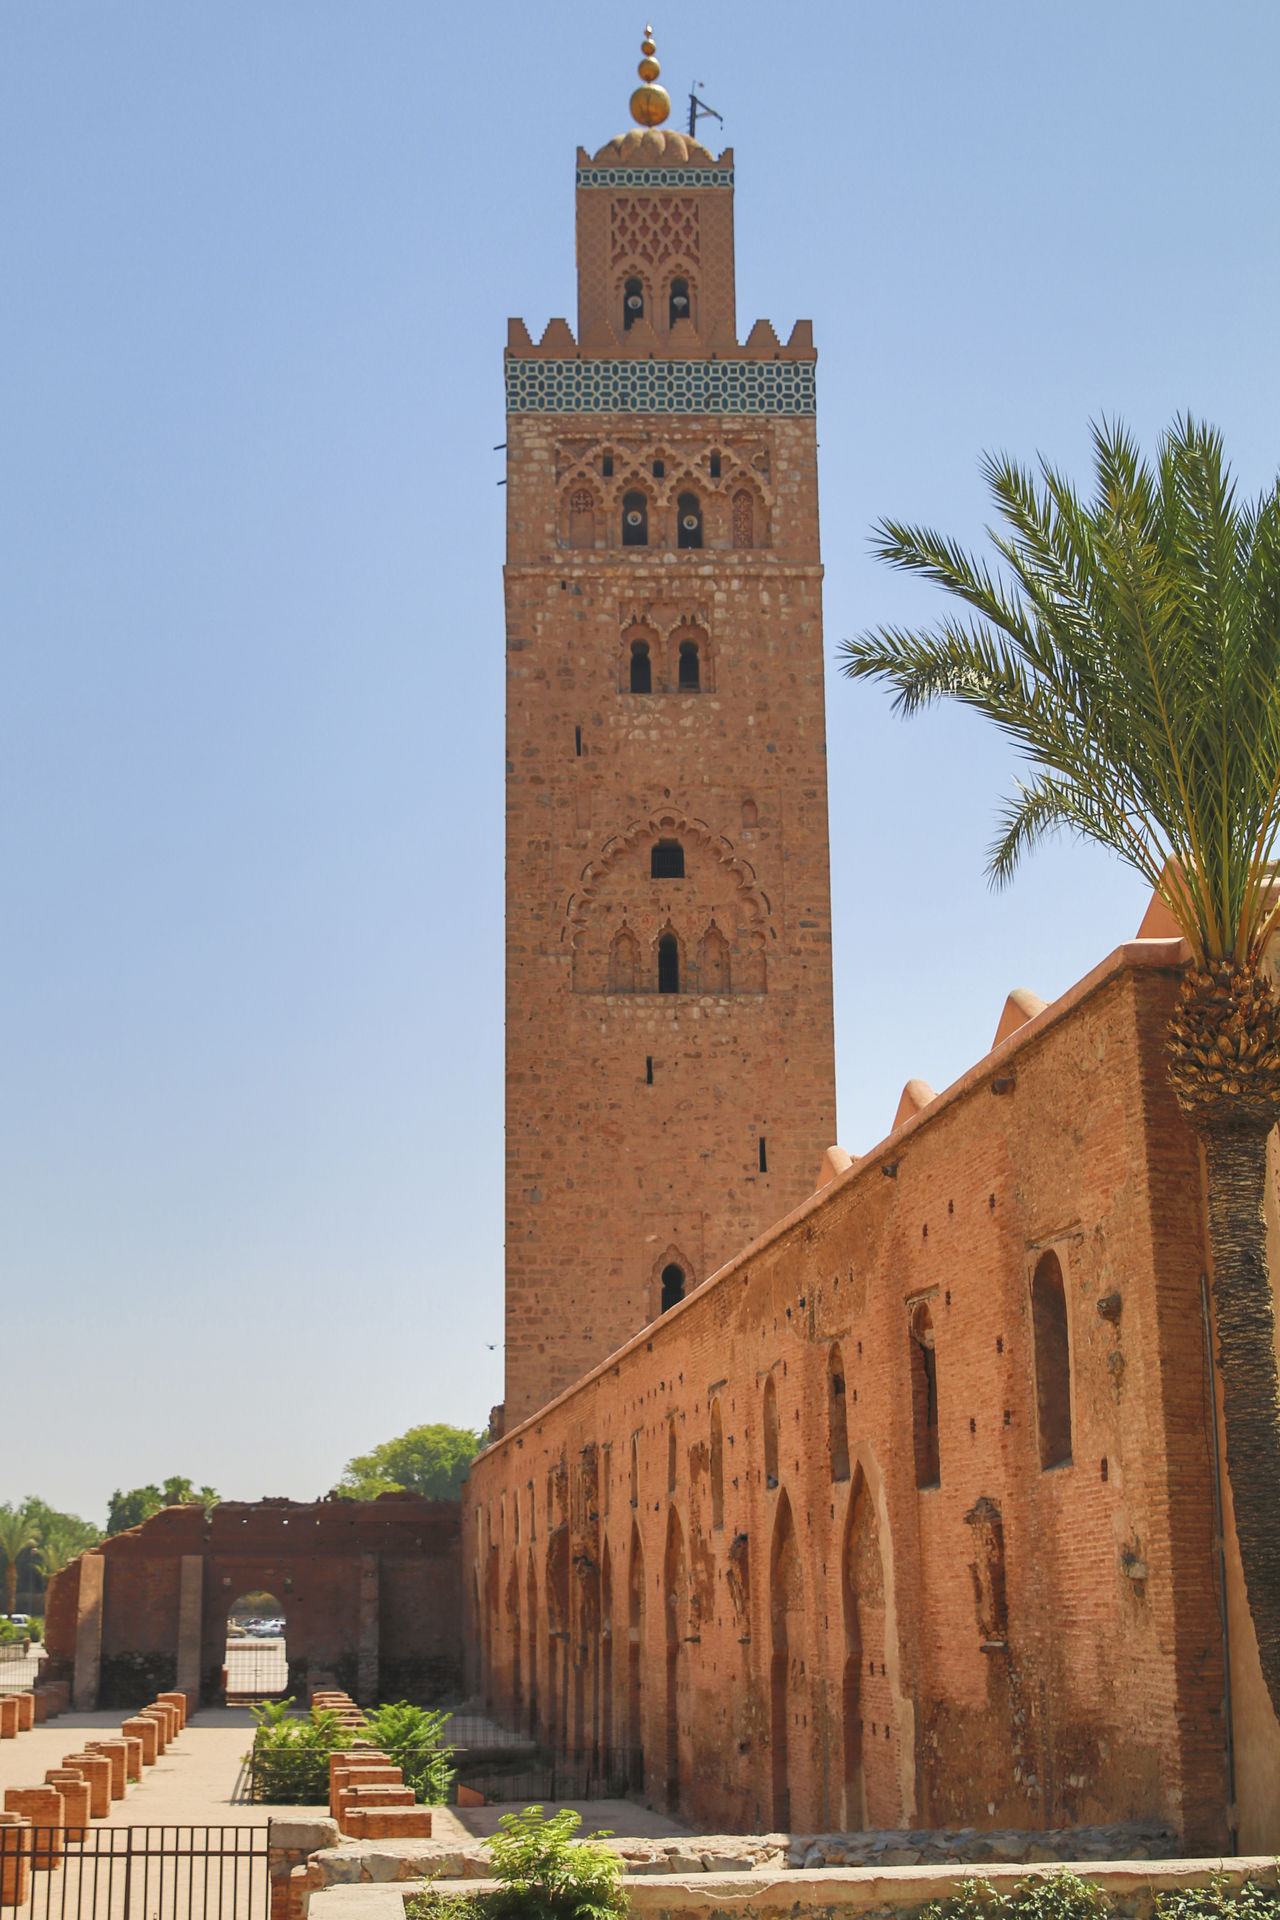 mezquita marrakesh Architecture Building Exterior Clear Sky Marrakesh Morocco No People Sky Tower Travel Travel Destinations